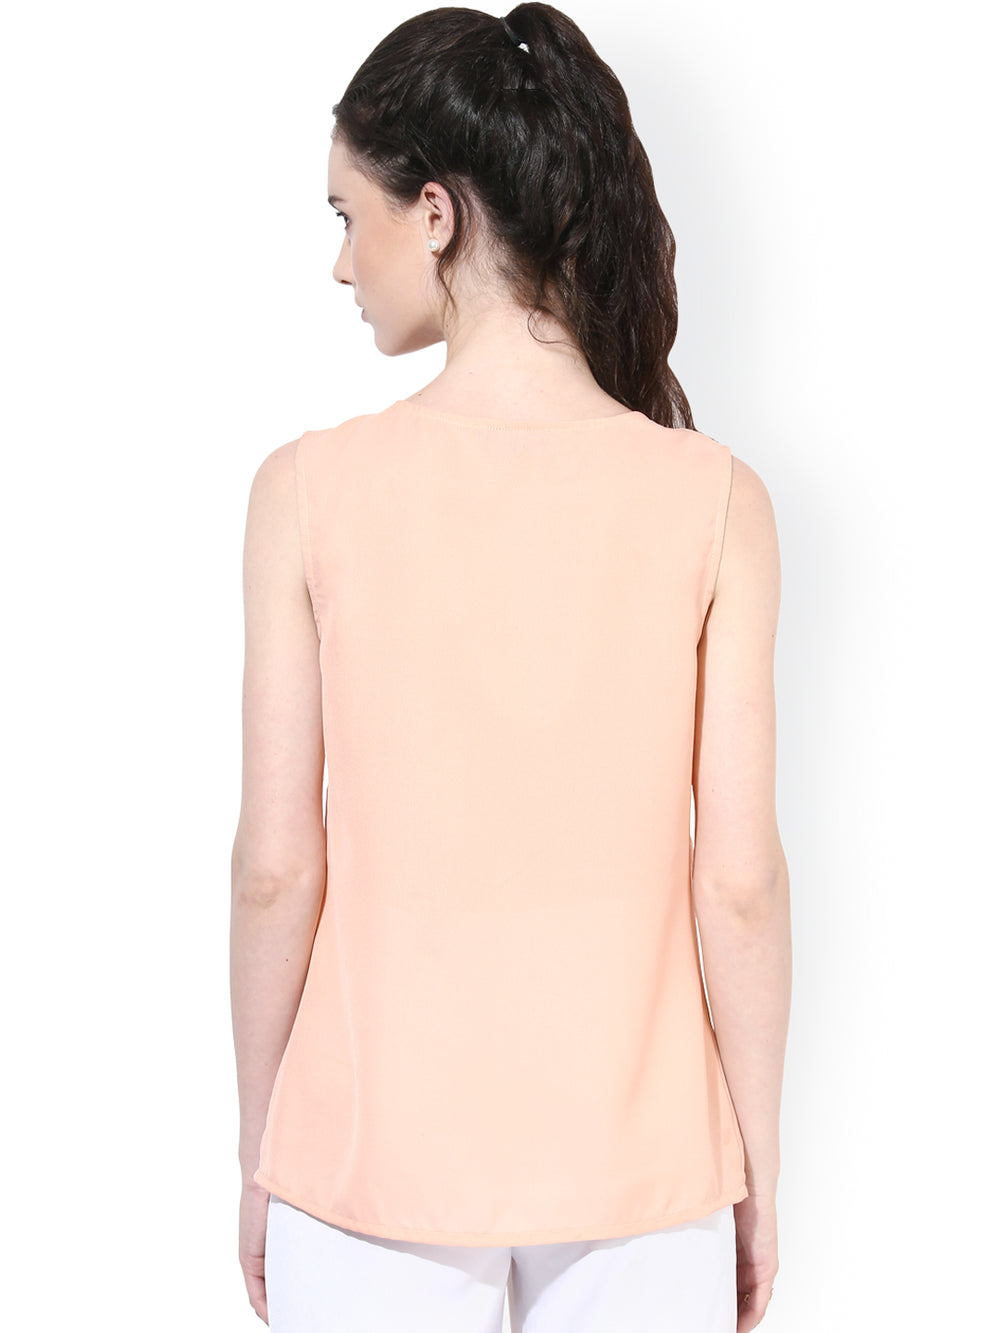 Besiva Peach-Coloured Top